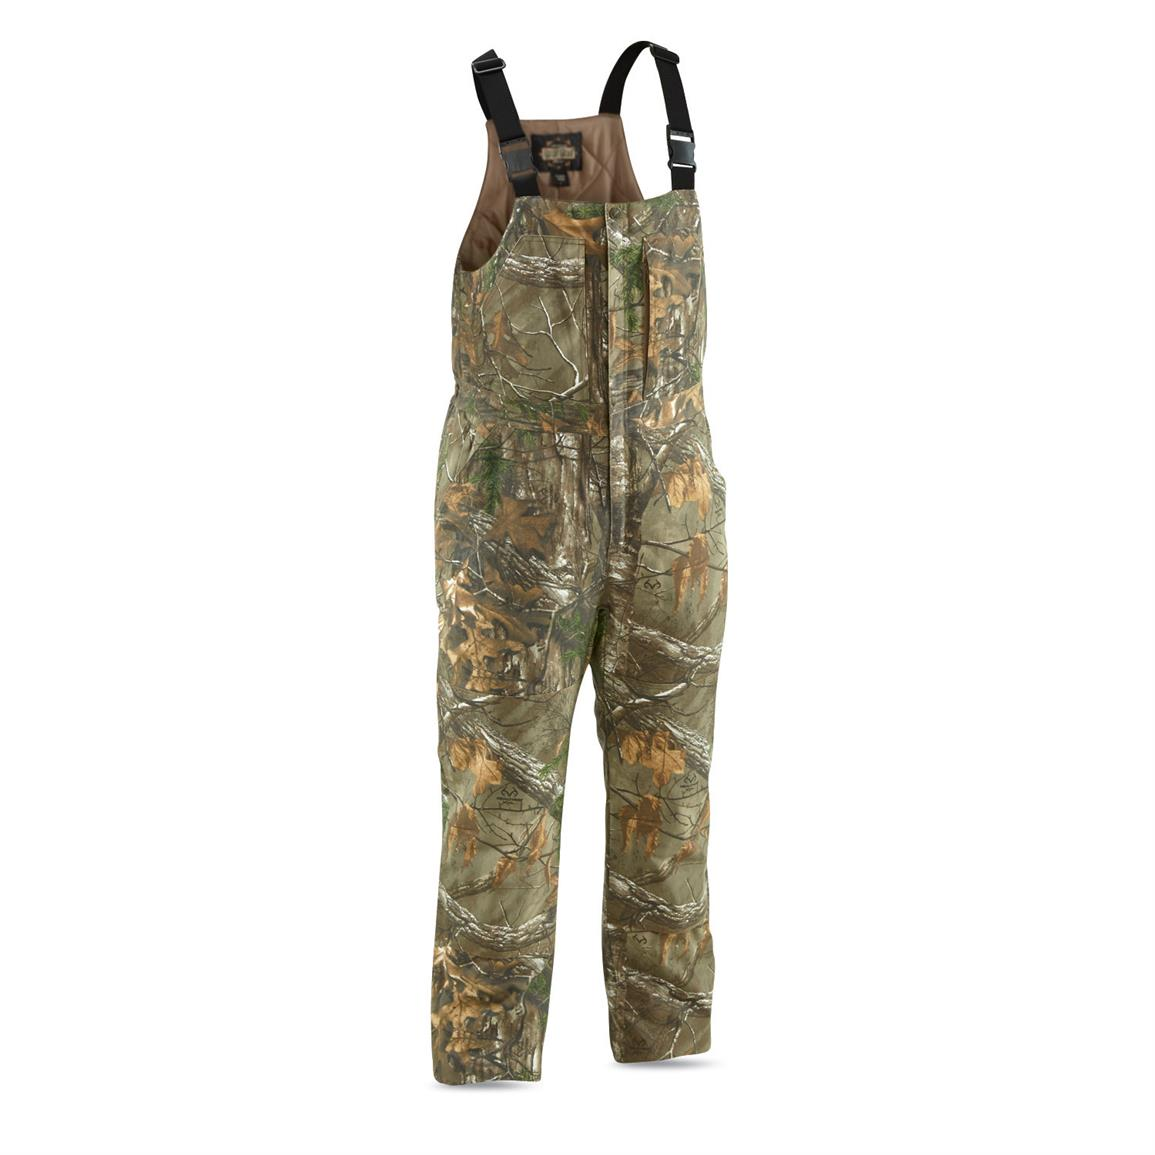 Guide Gear Men's Insulated Silent Adrenaline Hunting Bibs, Realtree Xtra